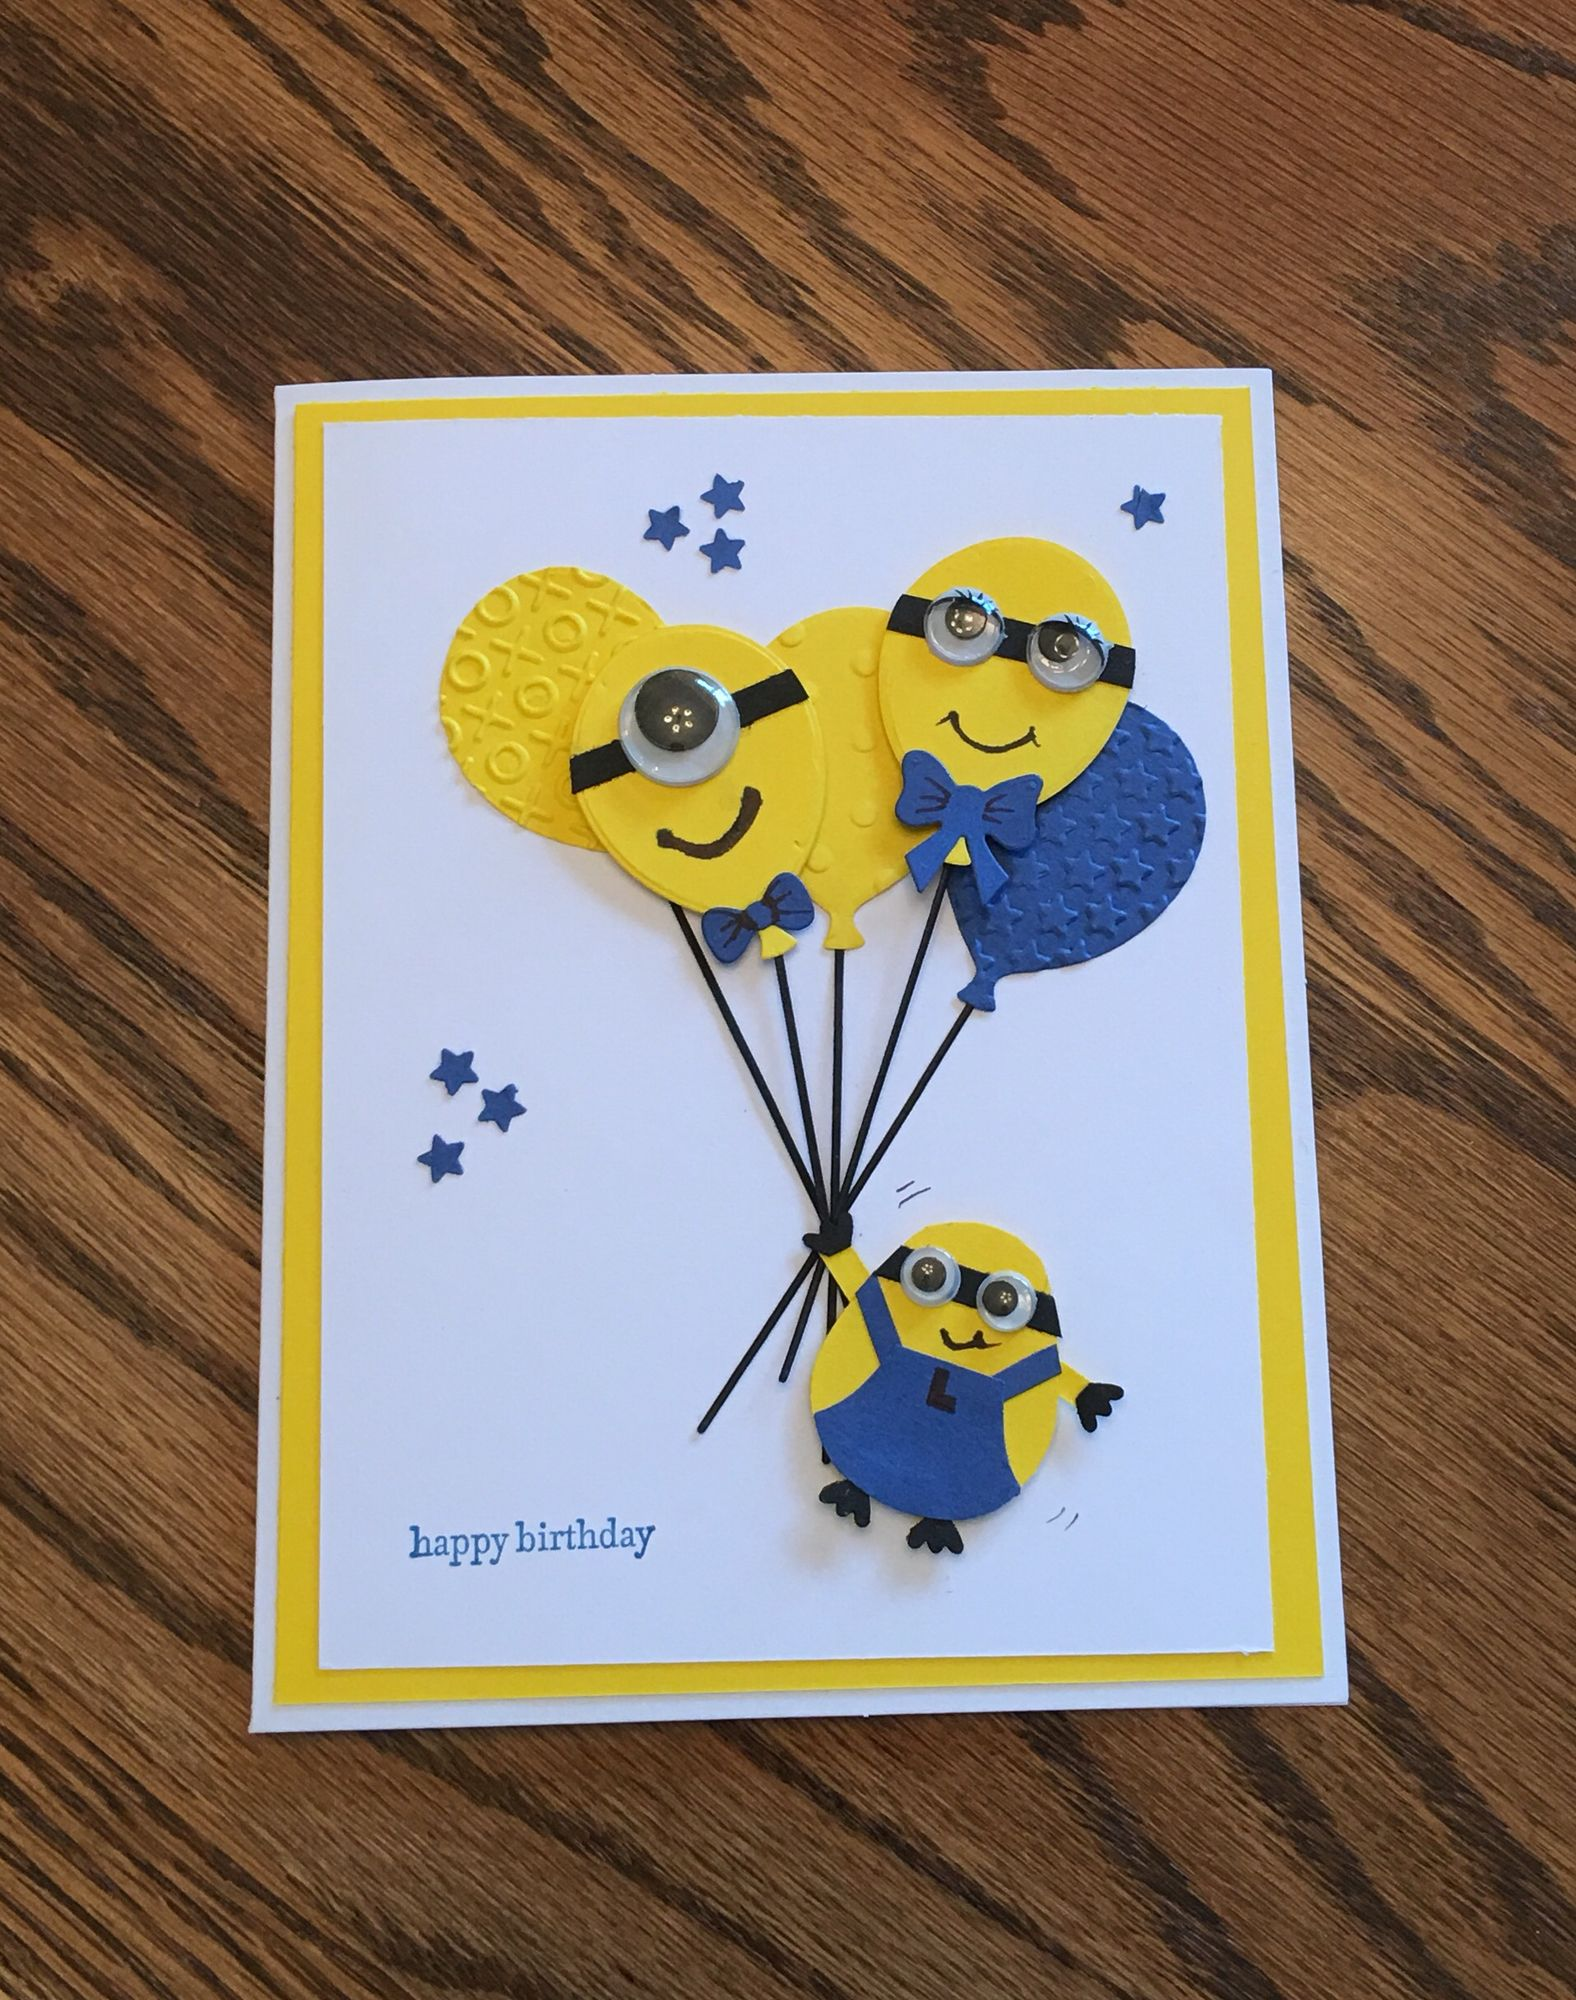 Minion Birthday Card I Got The Ideal From A Stamping Up Person On Pinterest And Had To Give It A Try For My Grands Minion Card Minion Birthday Card Kids Cards